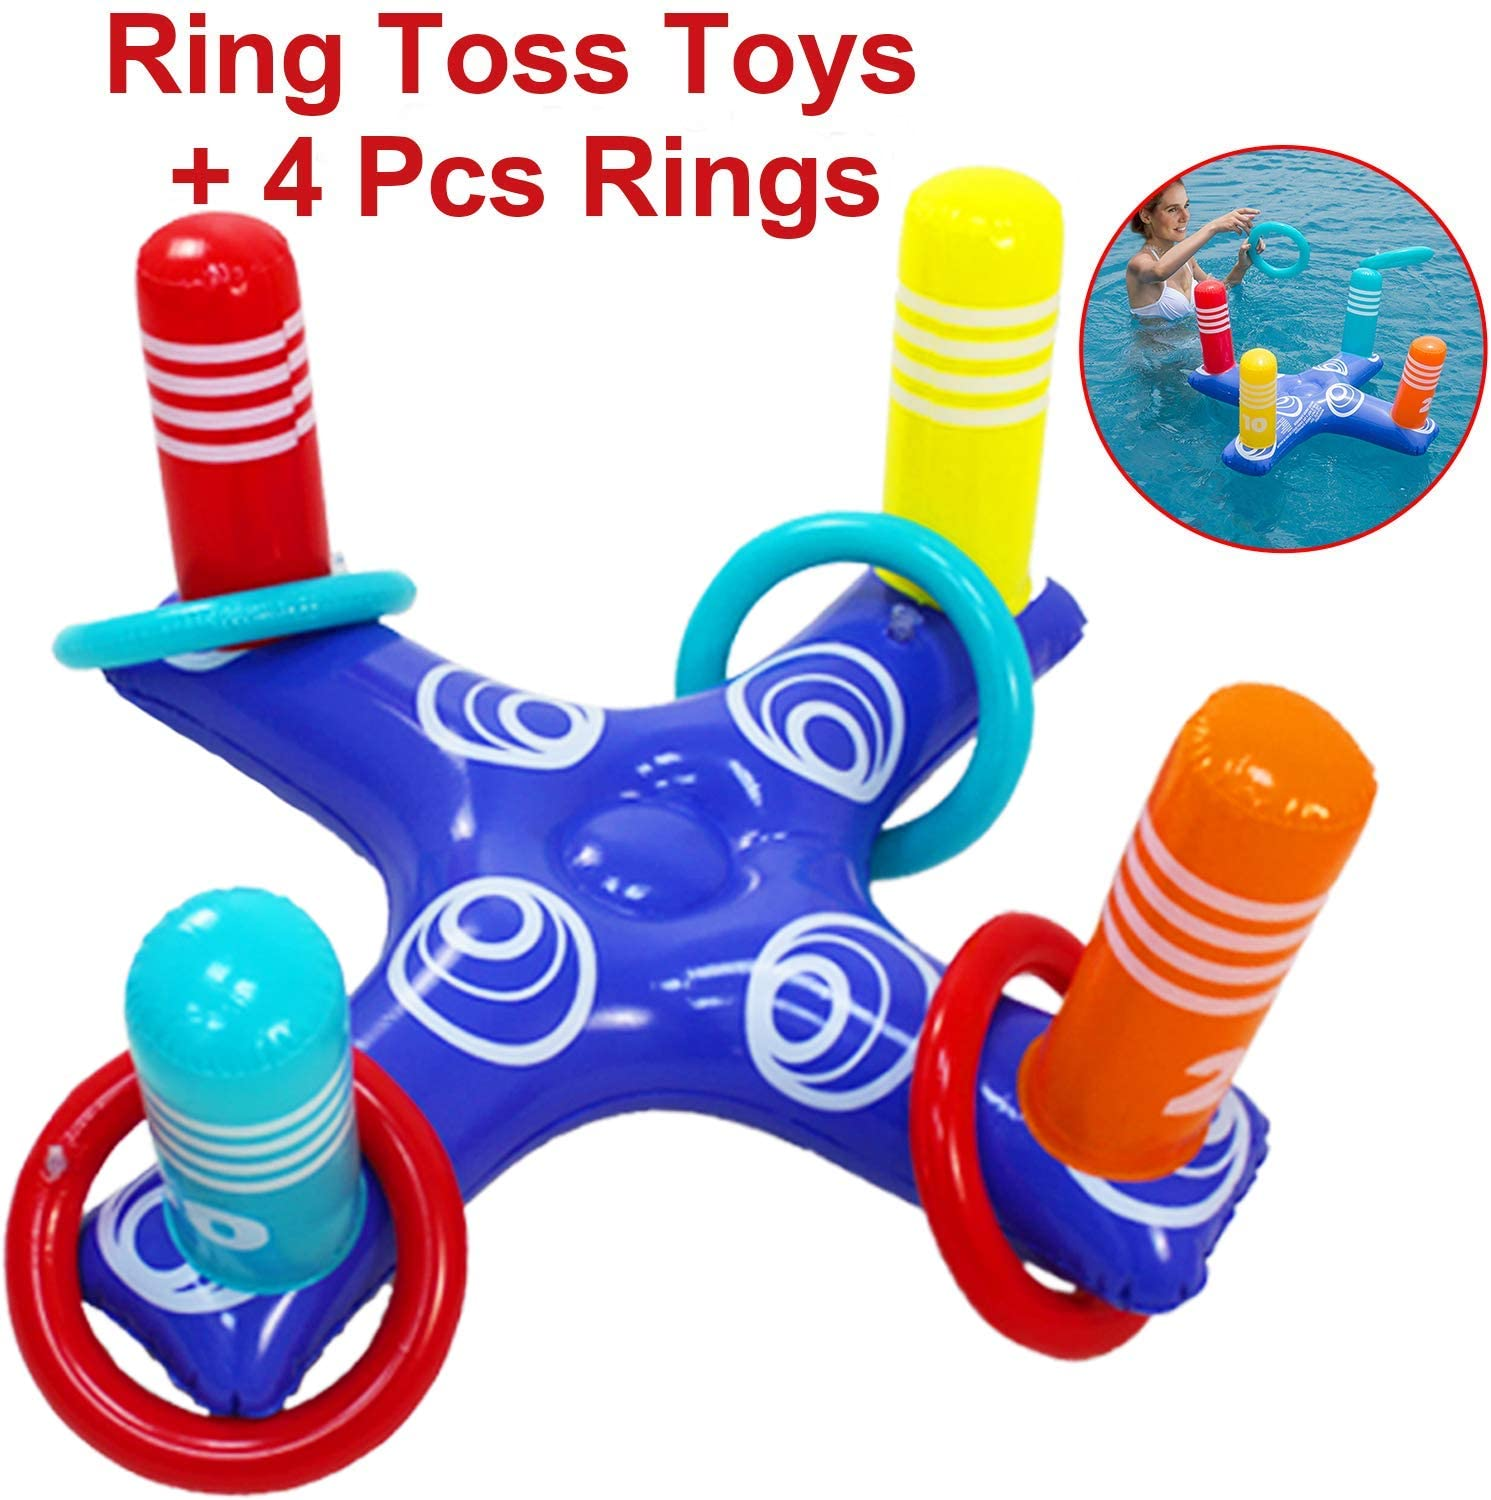 Adults and Family Outdoor Play Party Favors Multiplayer Summer Pool Games /& Beach Fun Toys with 6Pcs Rings H-Style Inflatable Pool Ring Toss Games Pool Toys for Kids